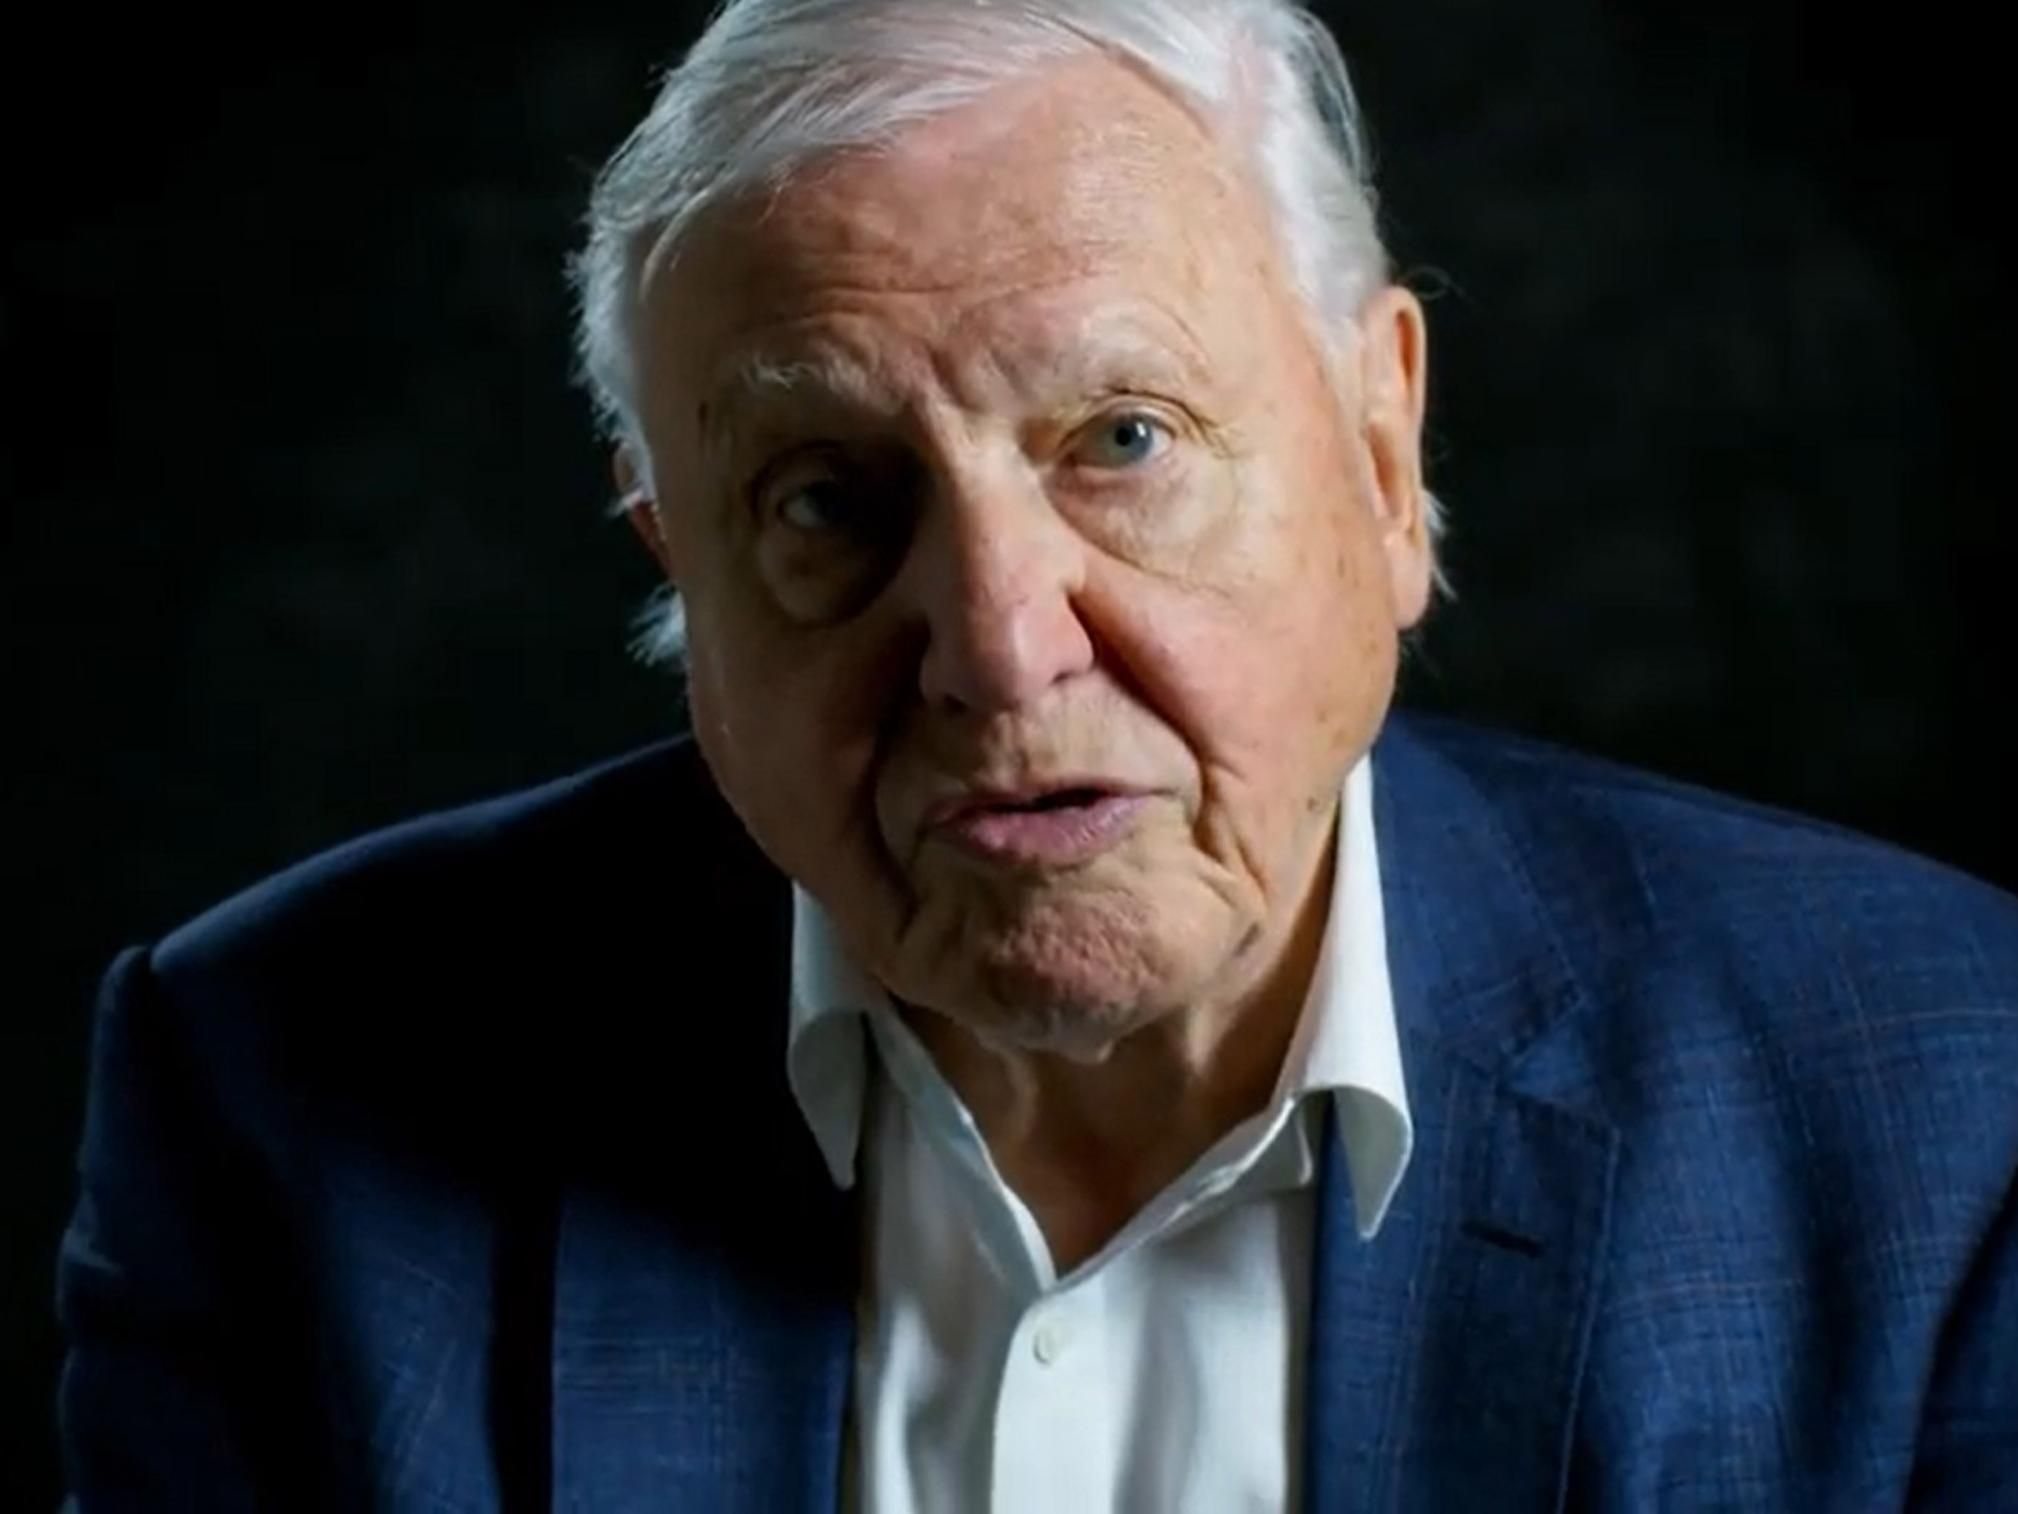 David Attenborough hopes working from home becomes permanent after the coronavirus pandemic thumbnail